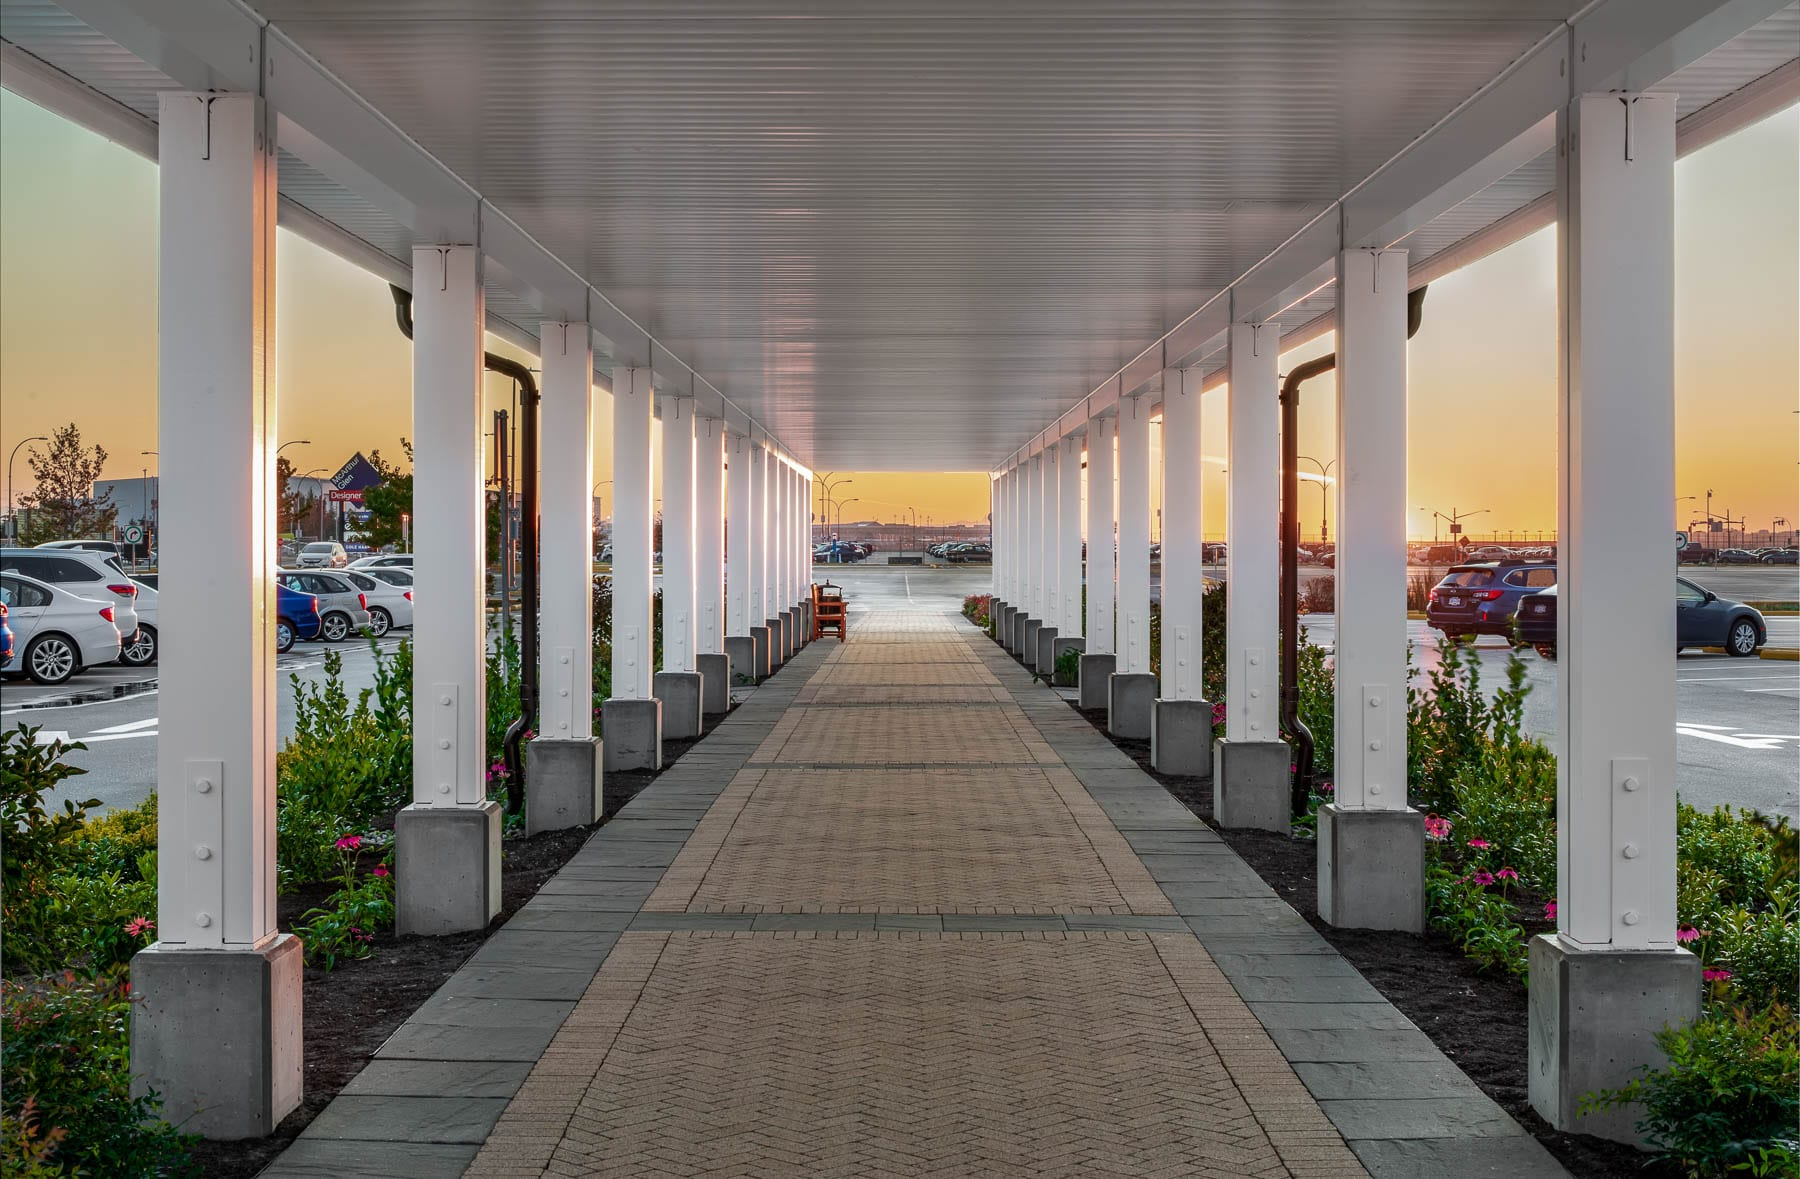 McArthurGlen Designer Outlet's new covered walkway with premium outdoor finishes